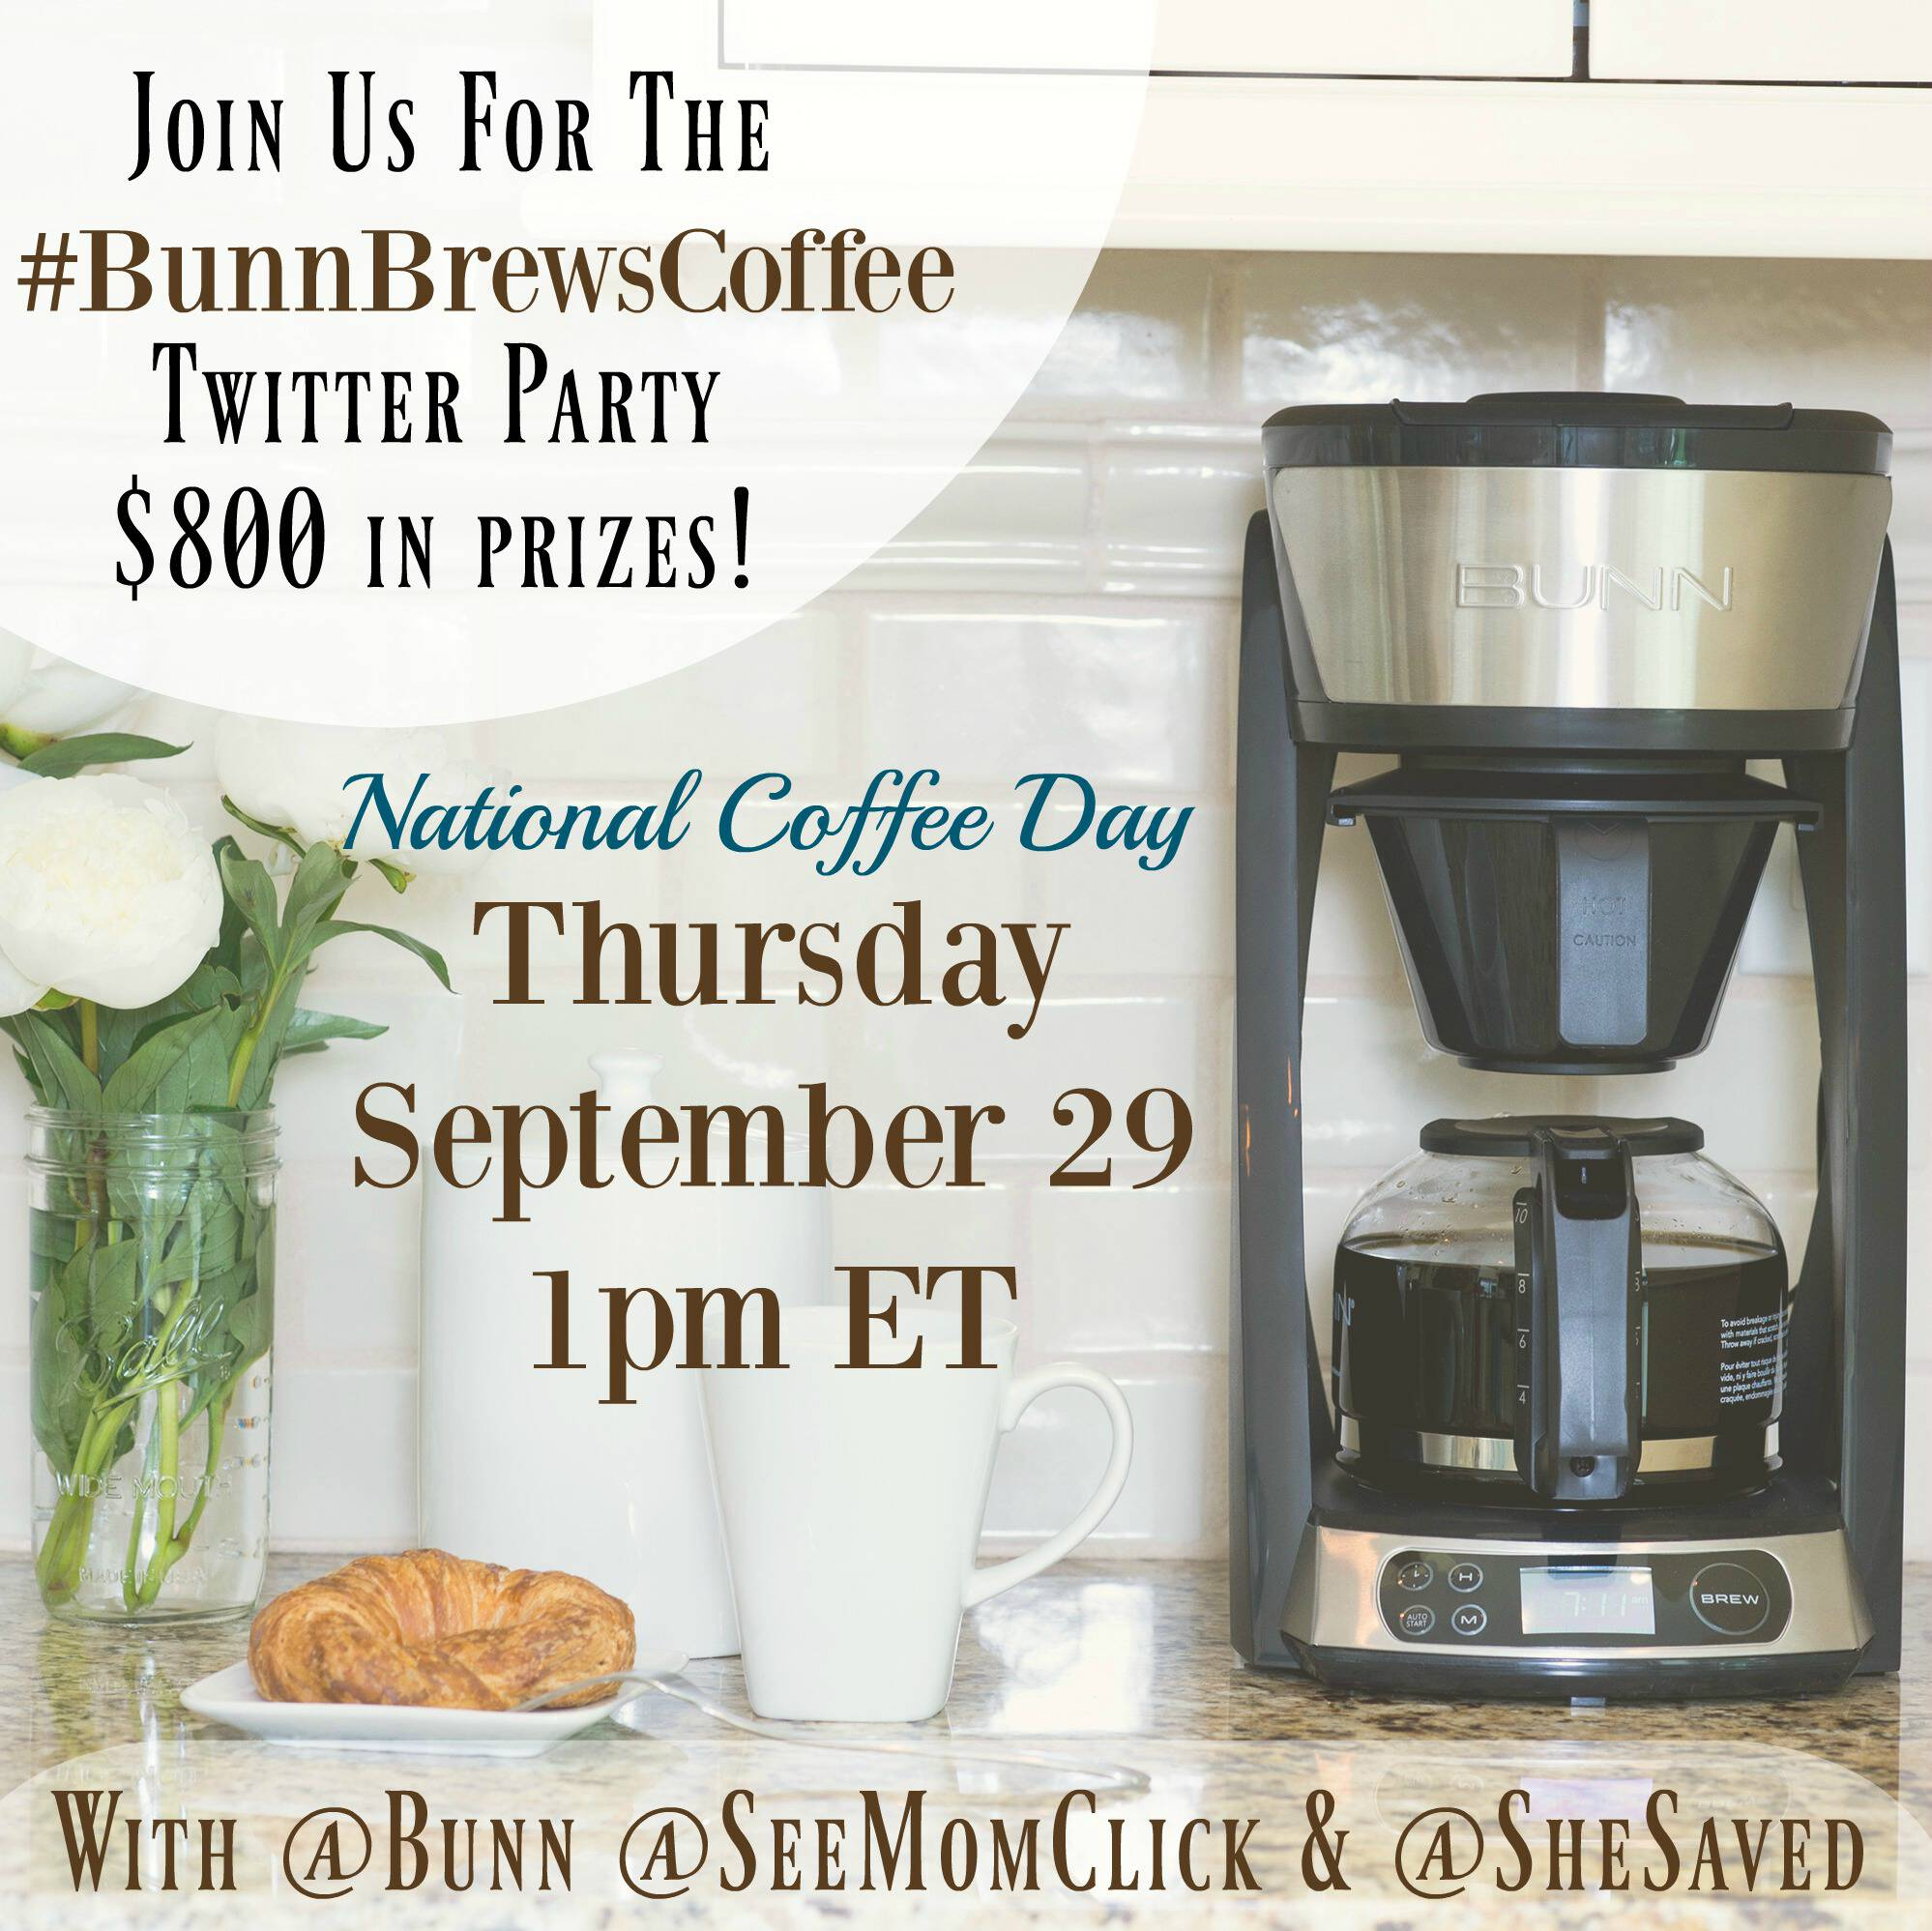 RSVP here for the #BunnBrewsCoffee Twitter Party at 1pm ET on September 29. We're going to celebrate National Coffee Day with $800 in prizes!